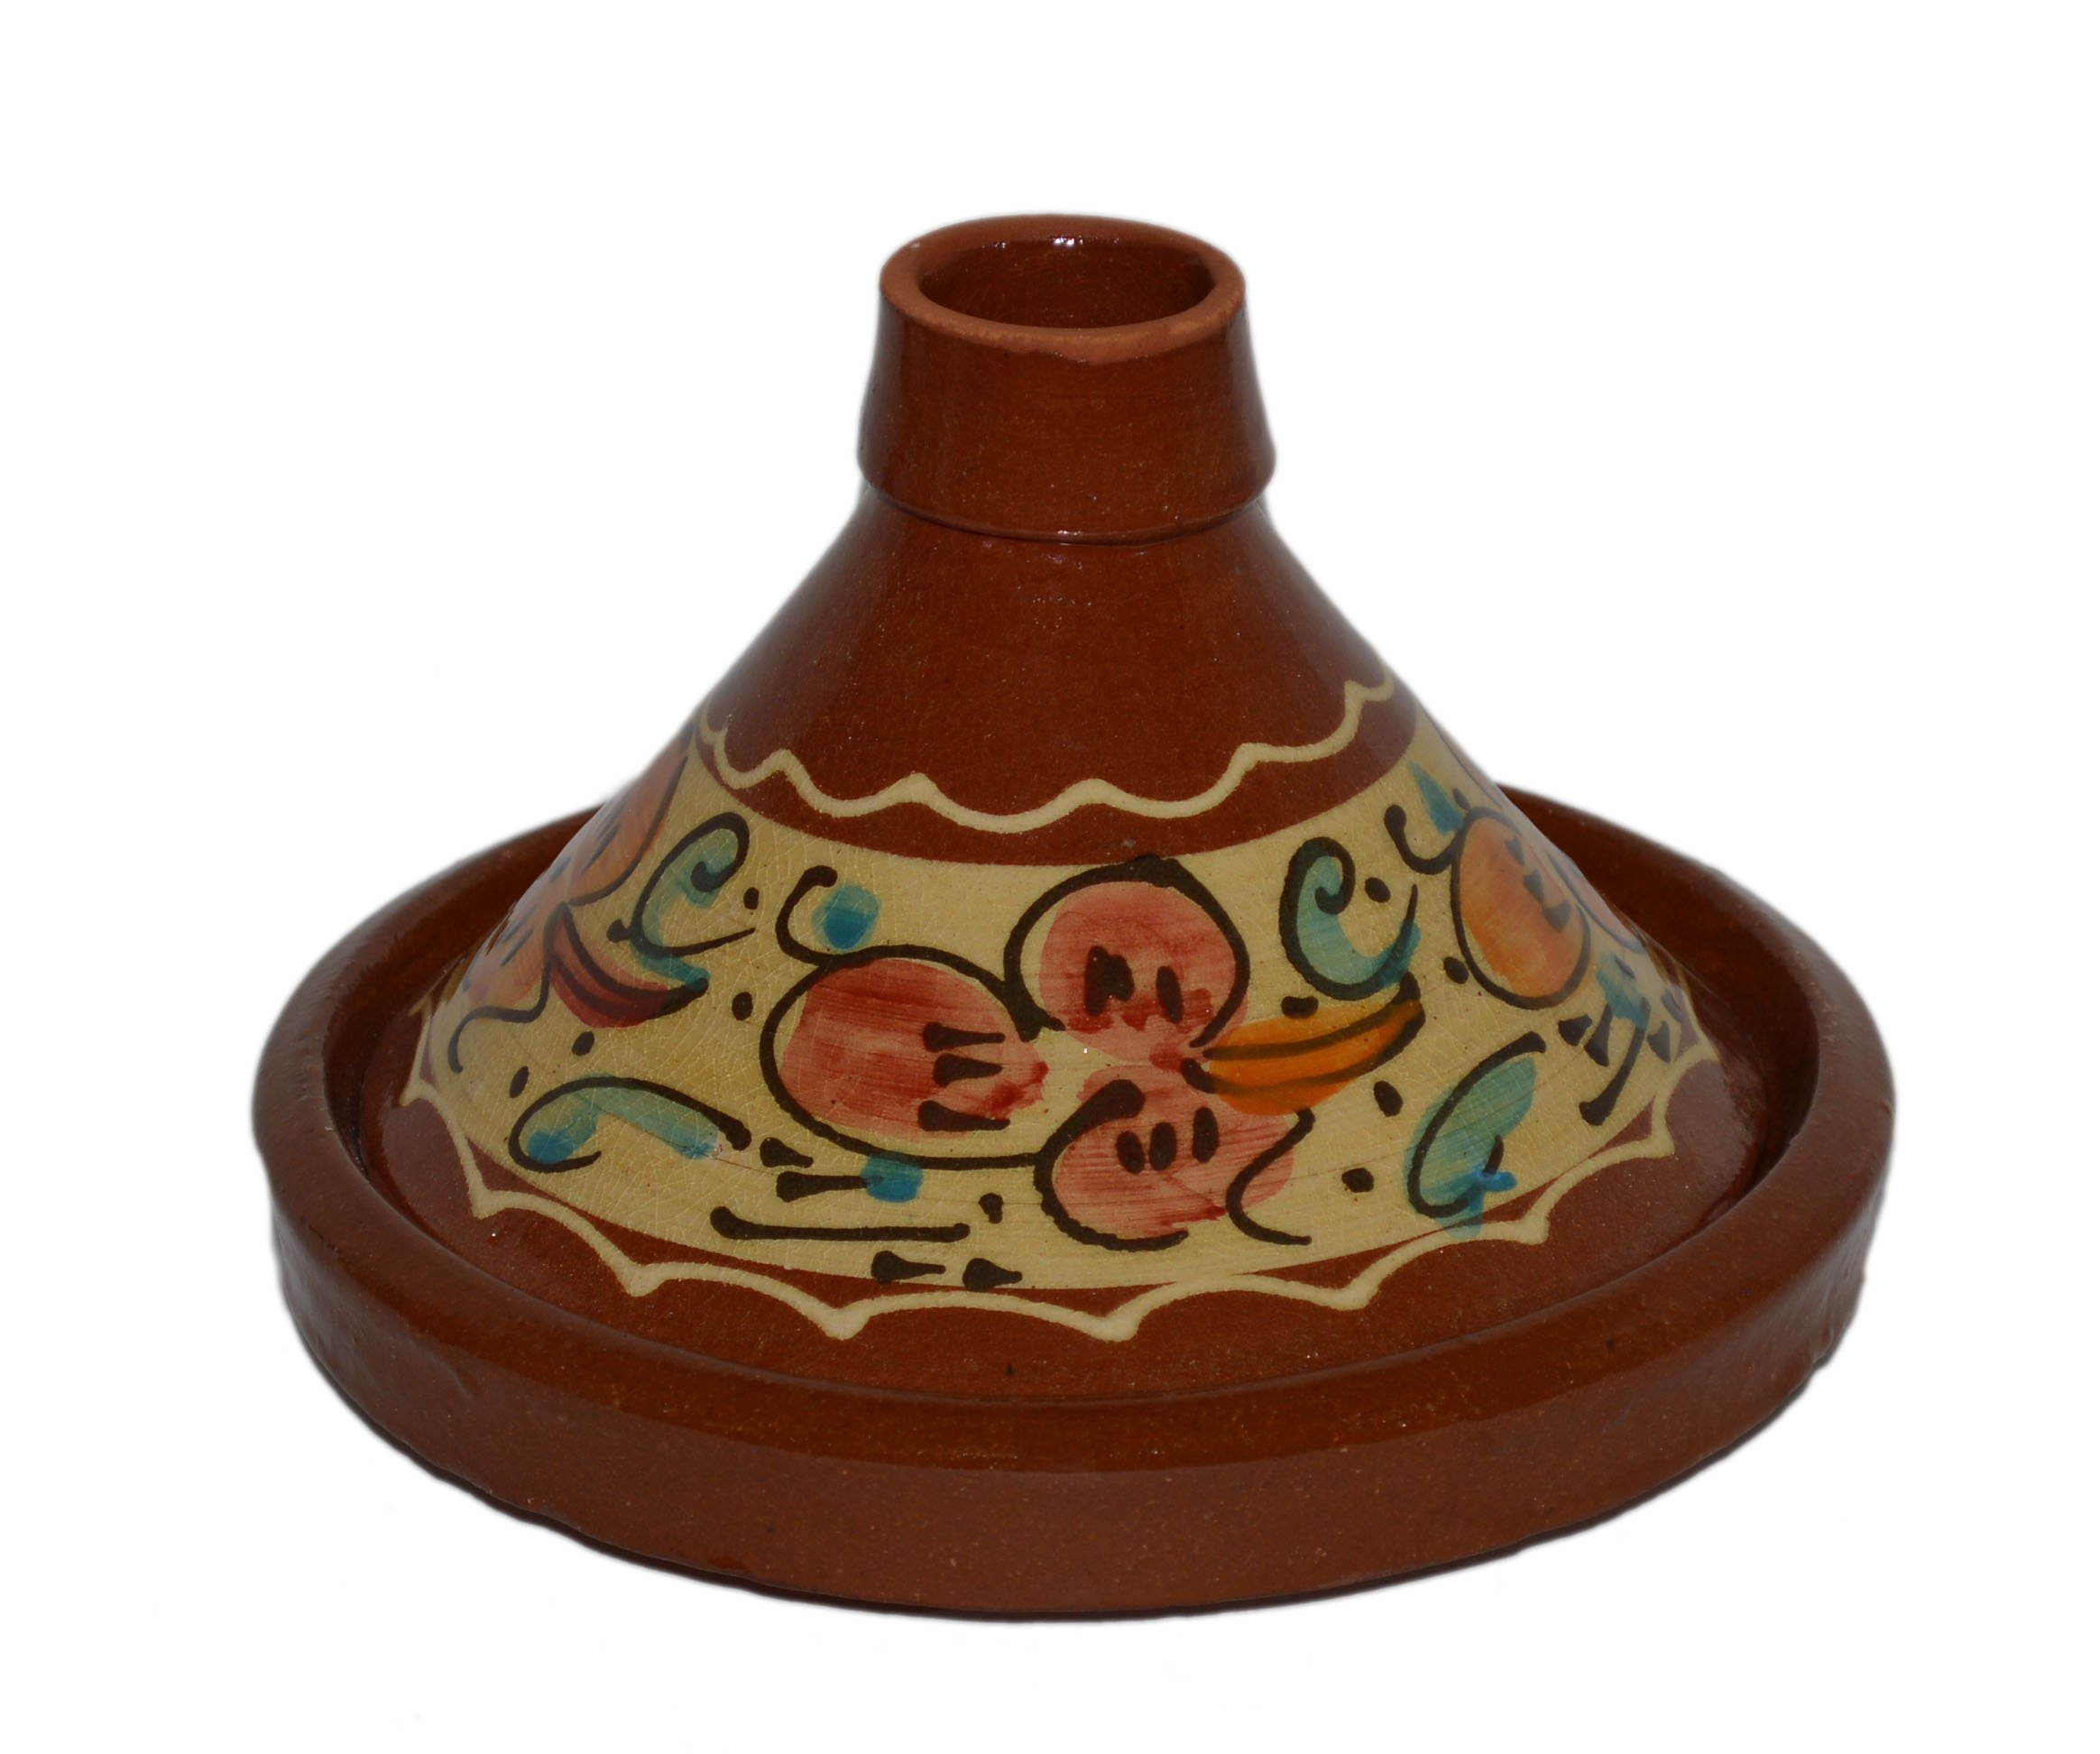 Moroccan Cooking Tagine Small Clay Tajine Pot by Cooking Tagines